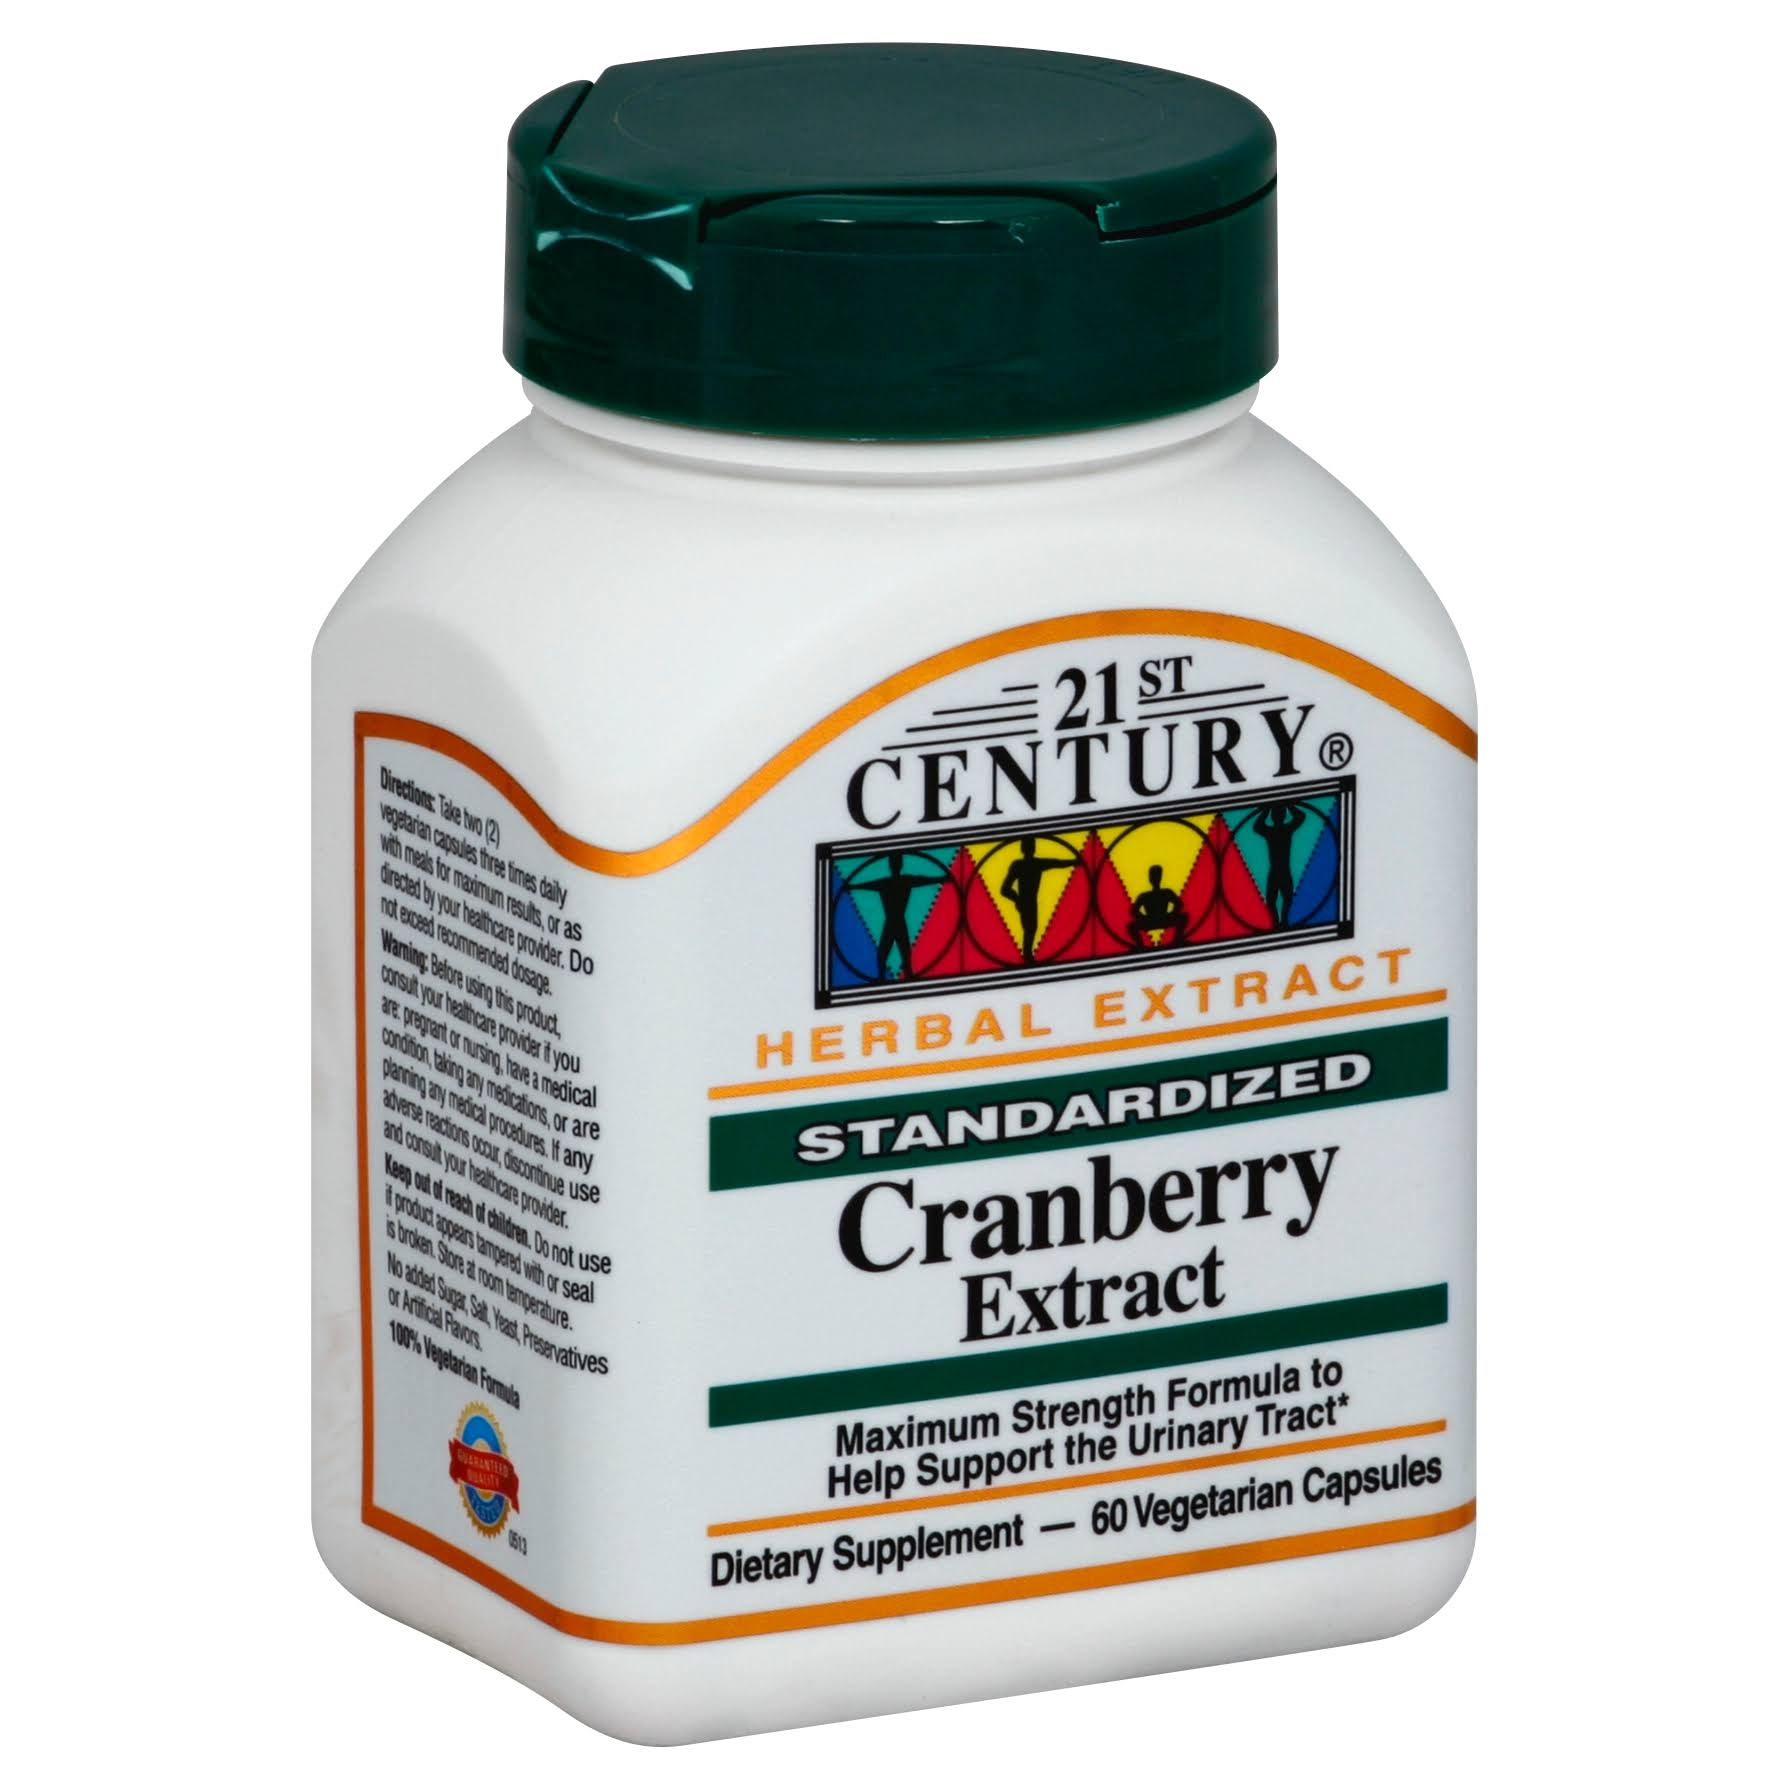 21st Century Cranberry Extract Dietary Supplement - 60ct